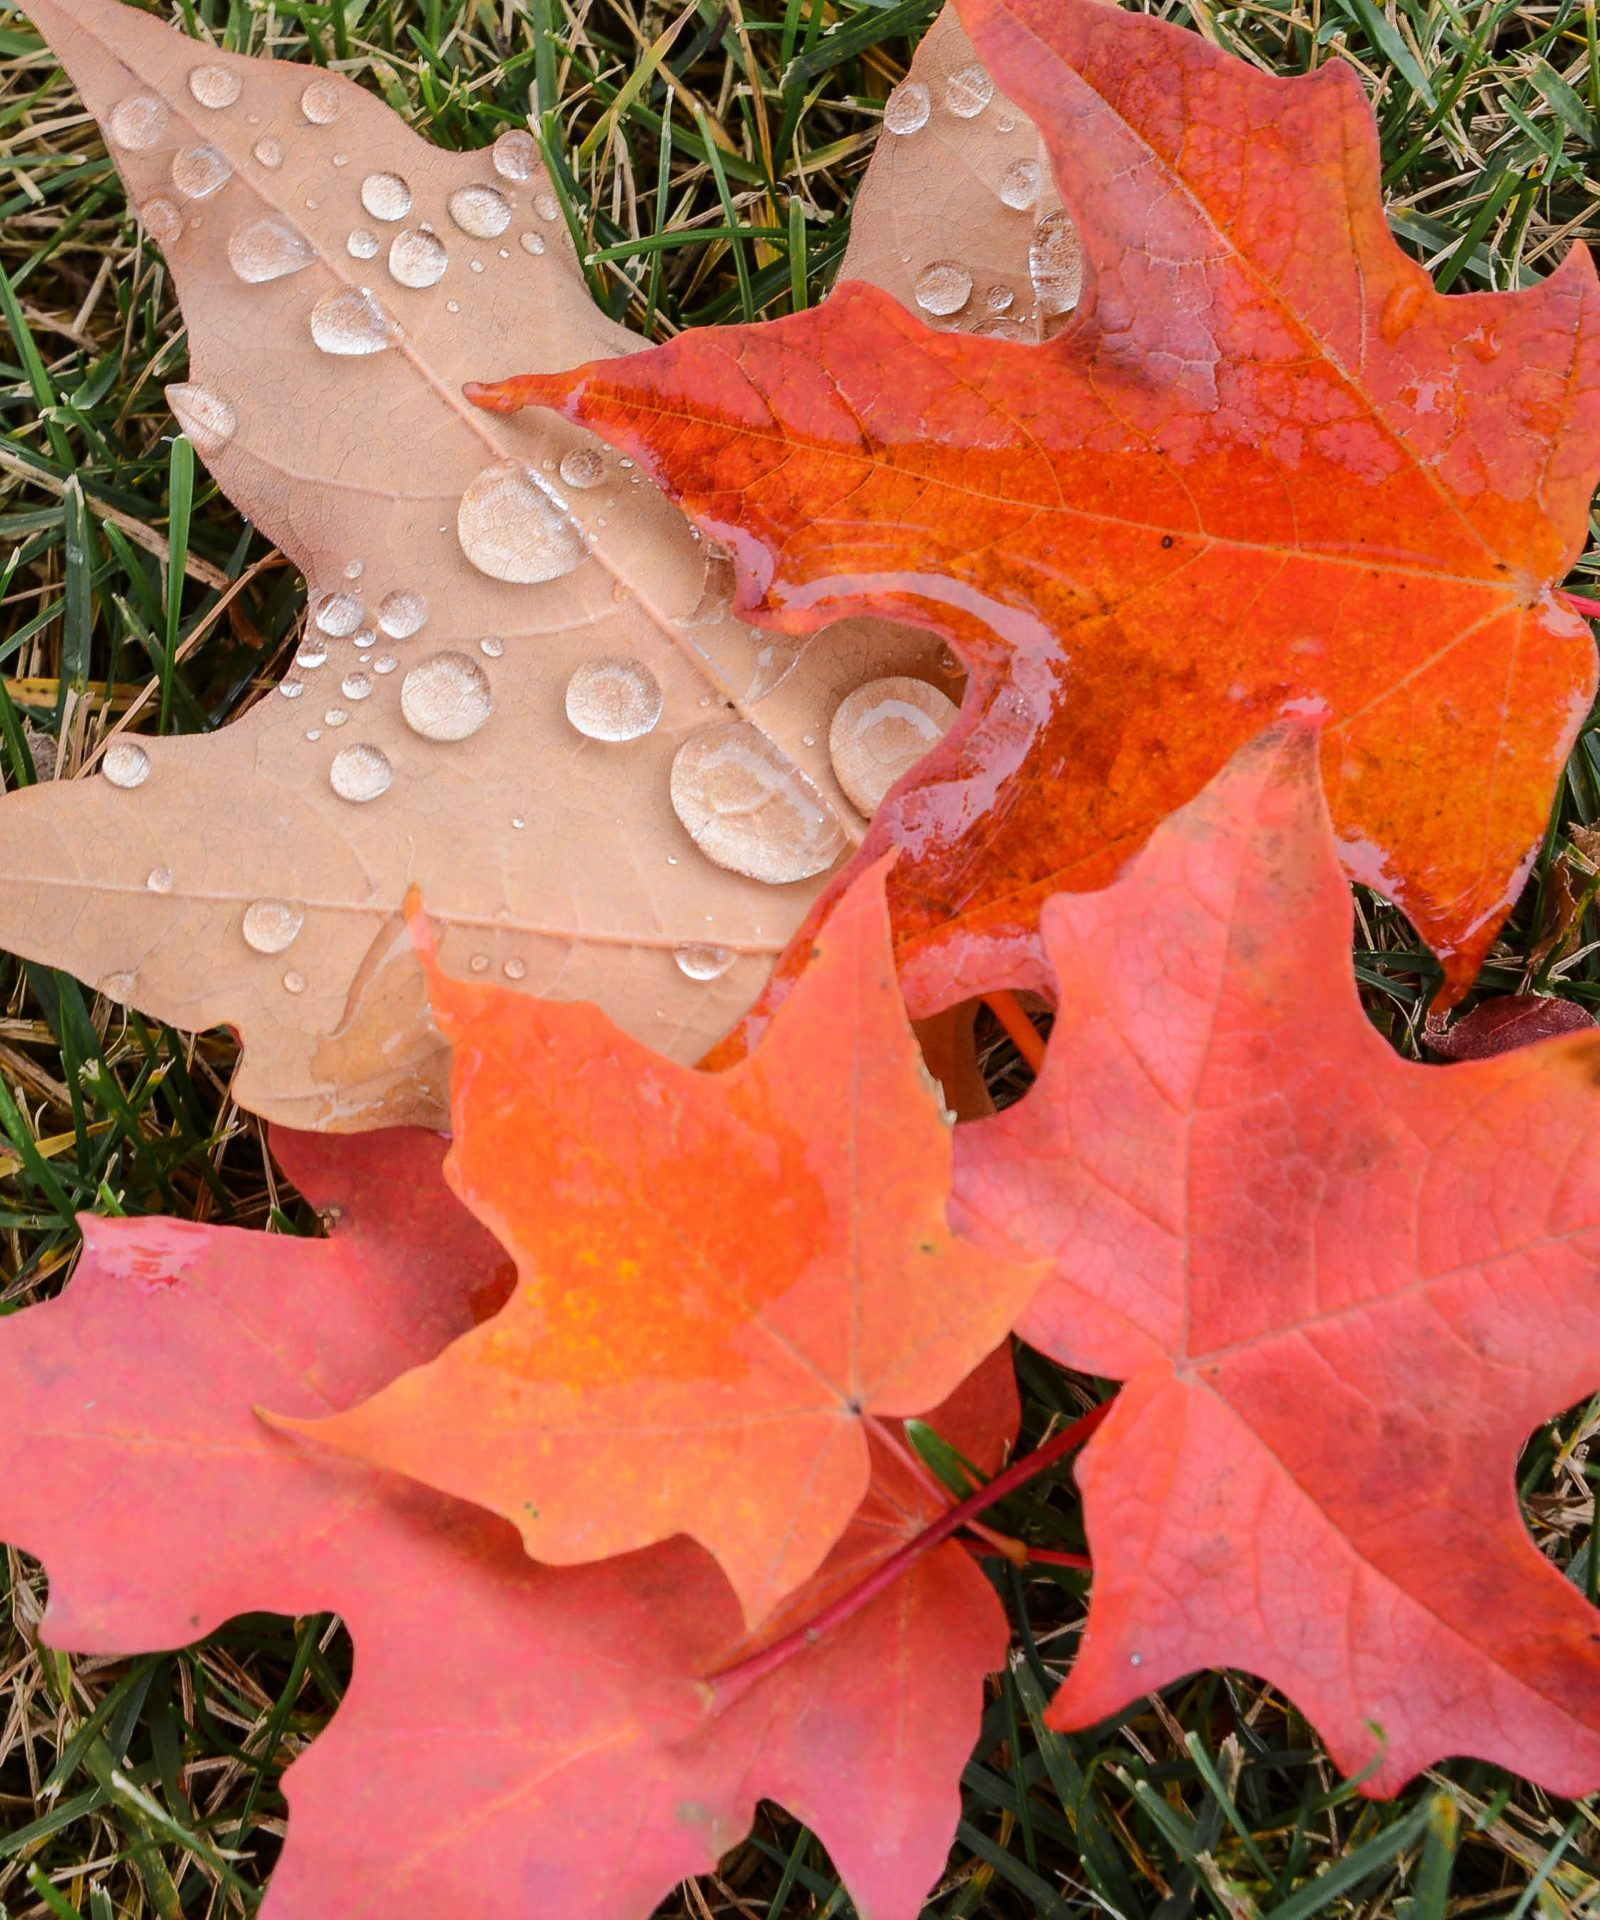 Fallen Leaves After the Rain